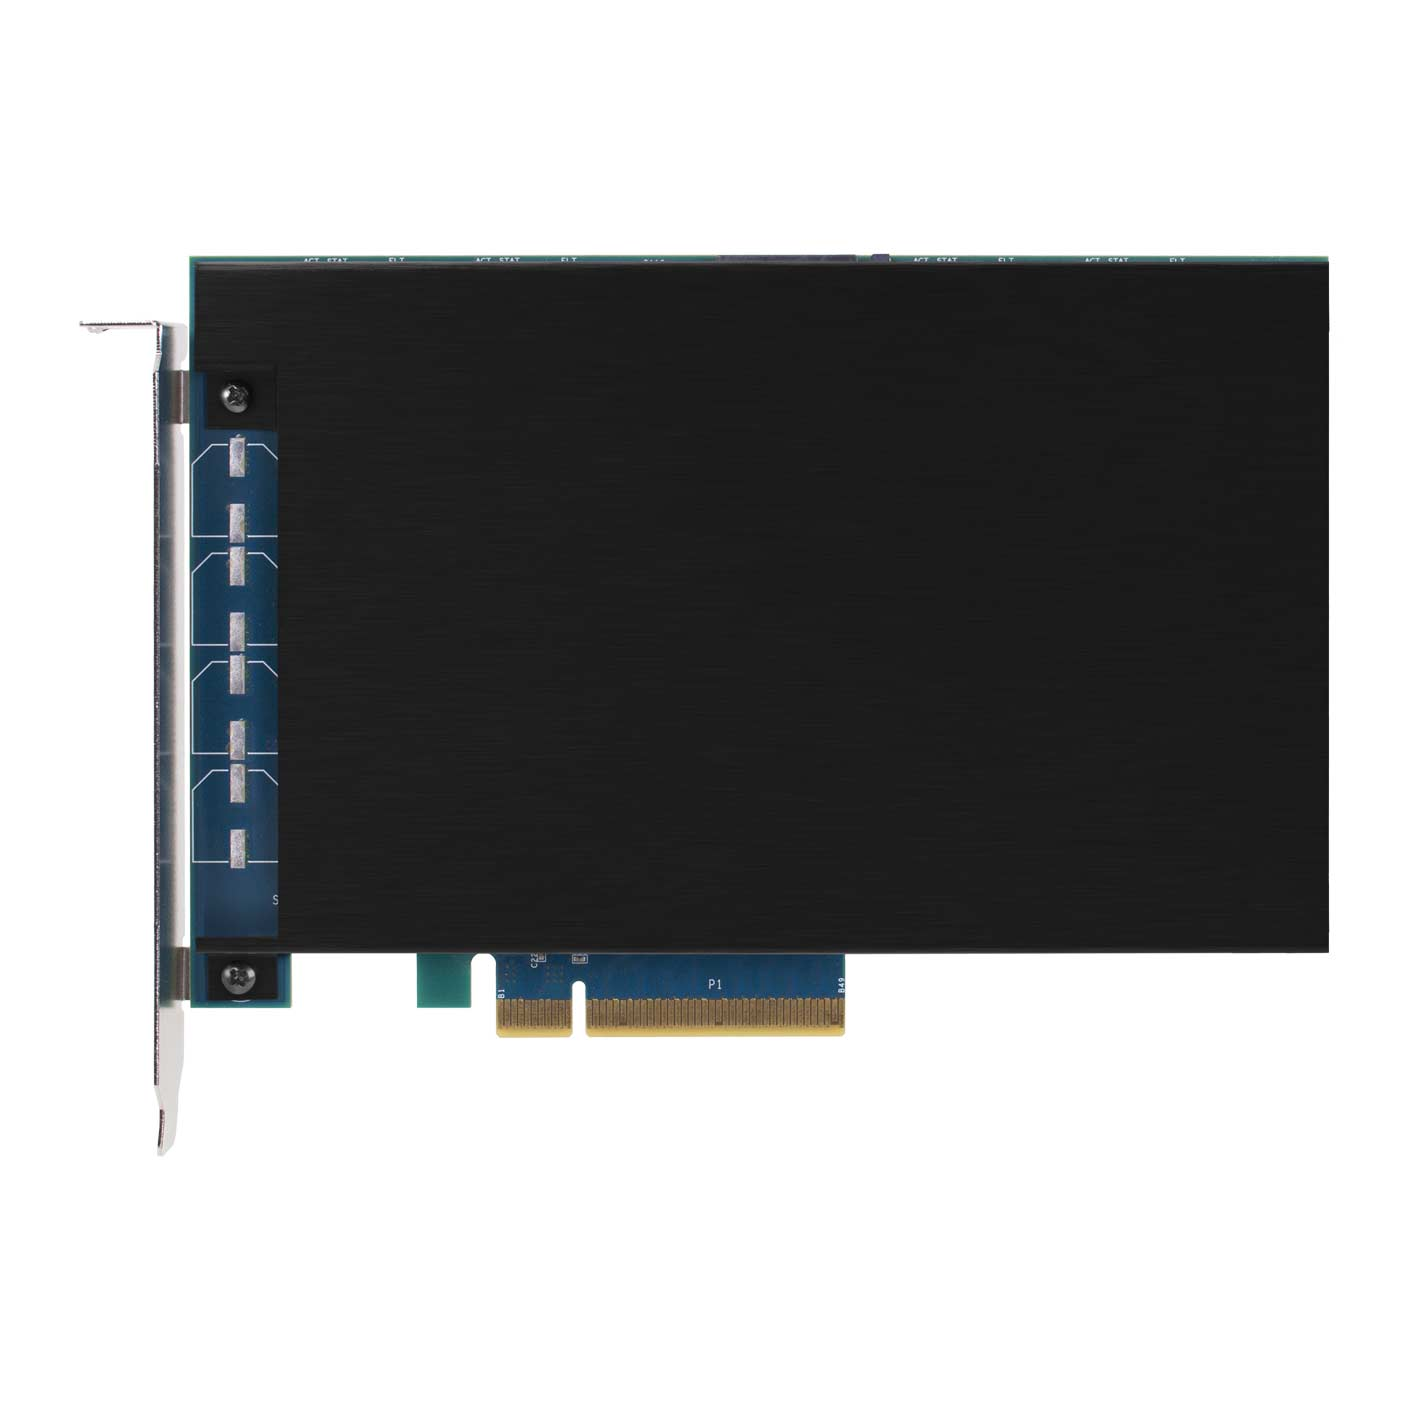 Owc mercury excelsior pro q pcie storage for mac download